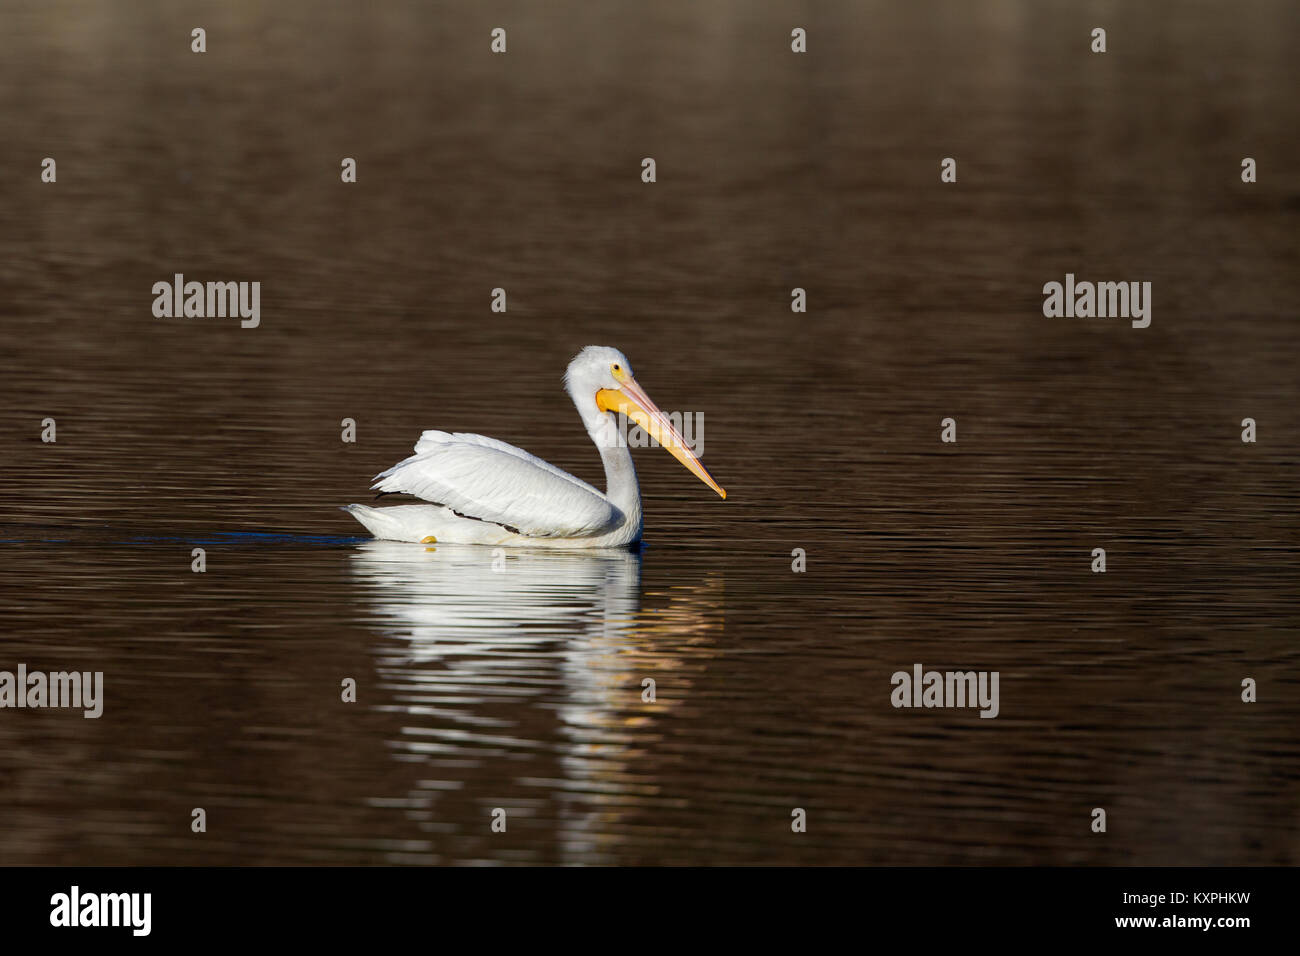 White Pelican on Brown Water - Stock Image